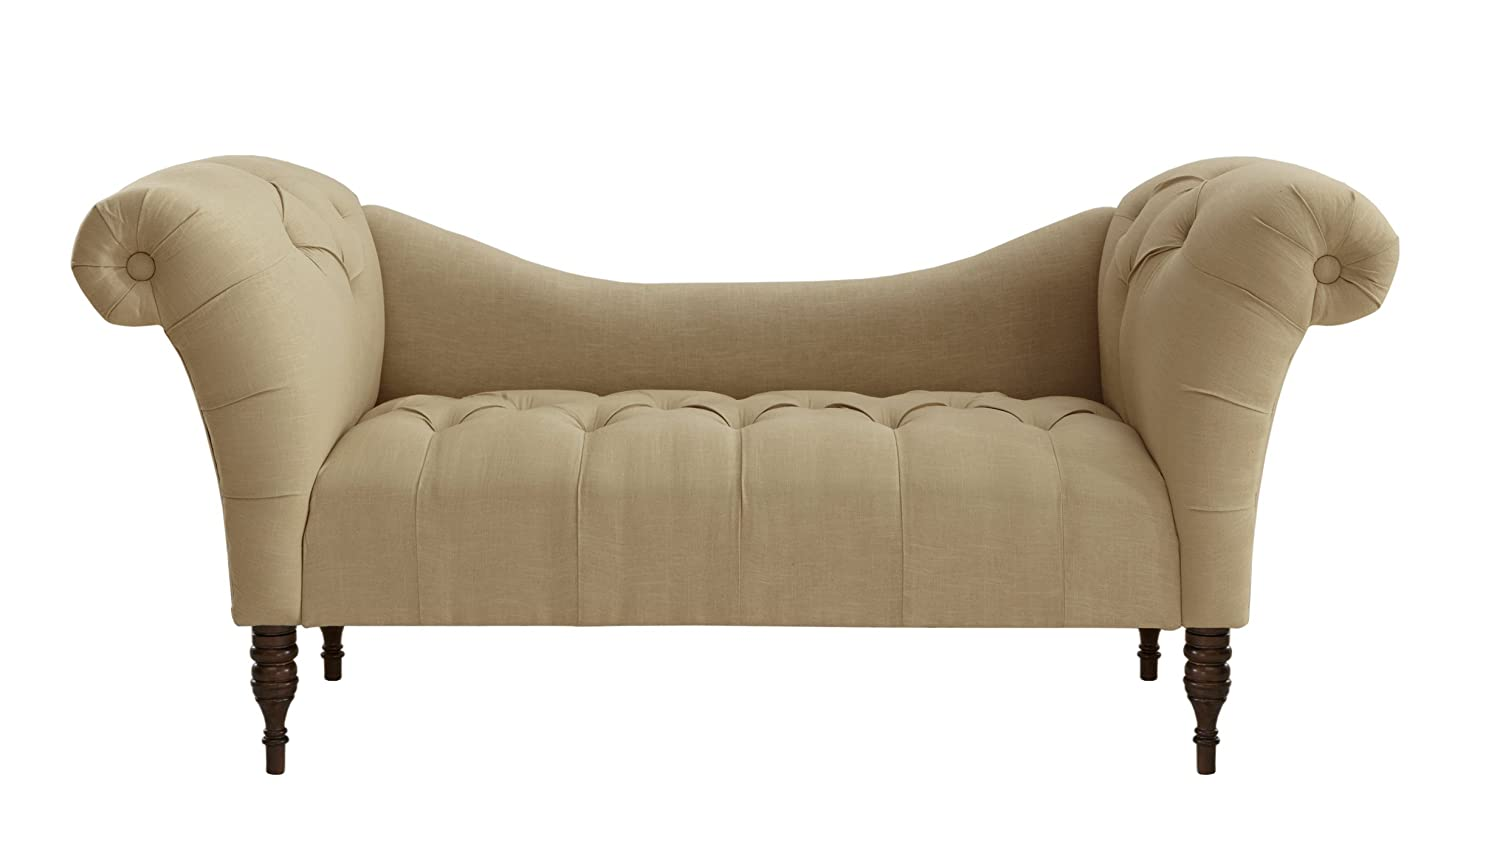 velvet lounge skyline ezpass uk tufted sale chaise club